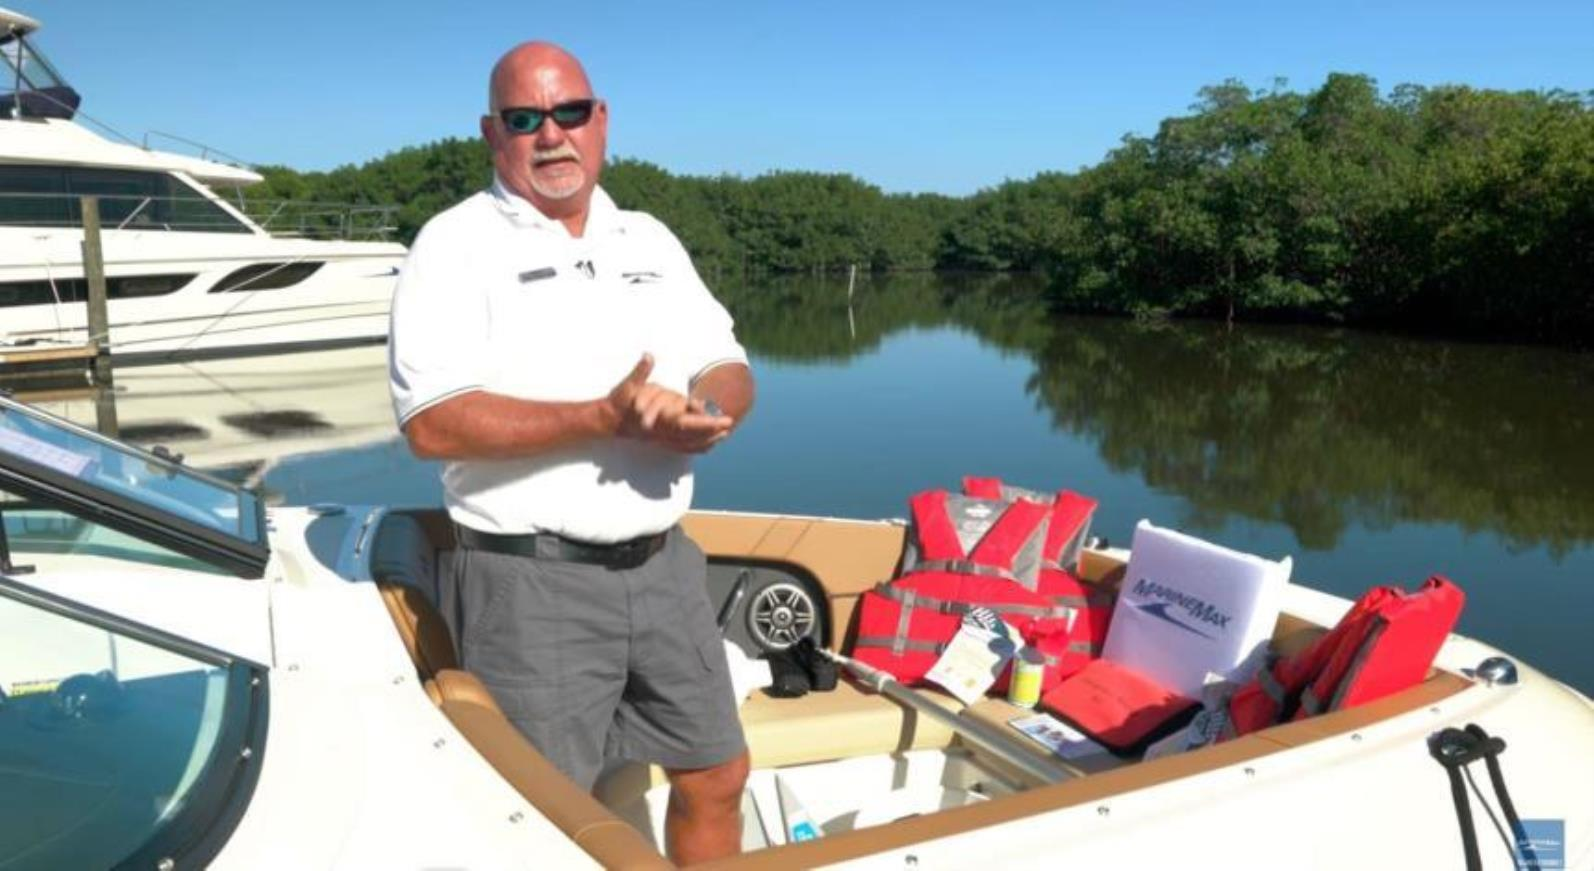 Boating Tips Video for Boating Gear